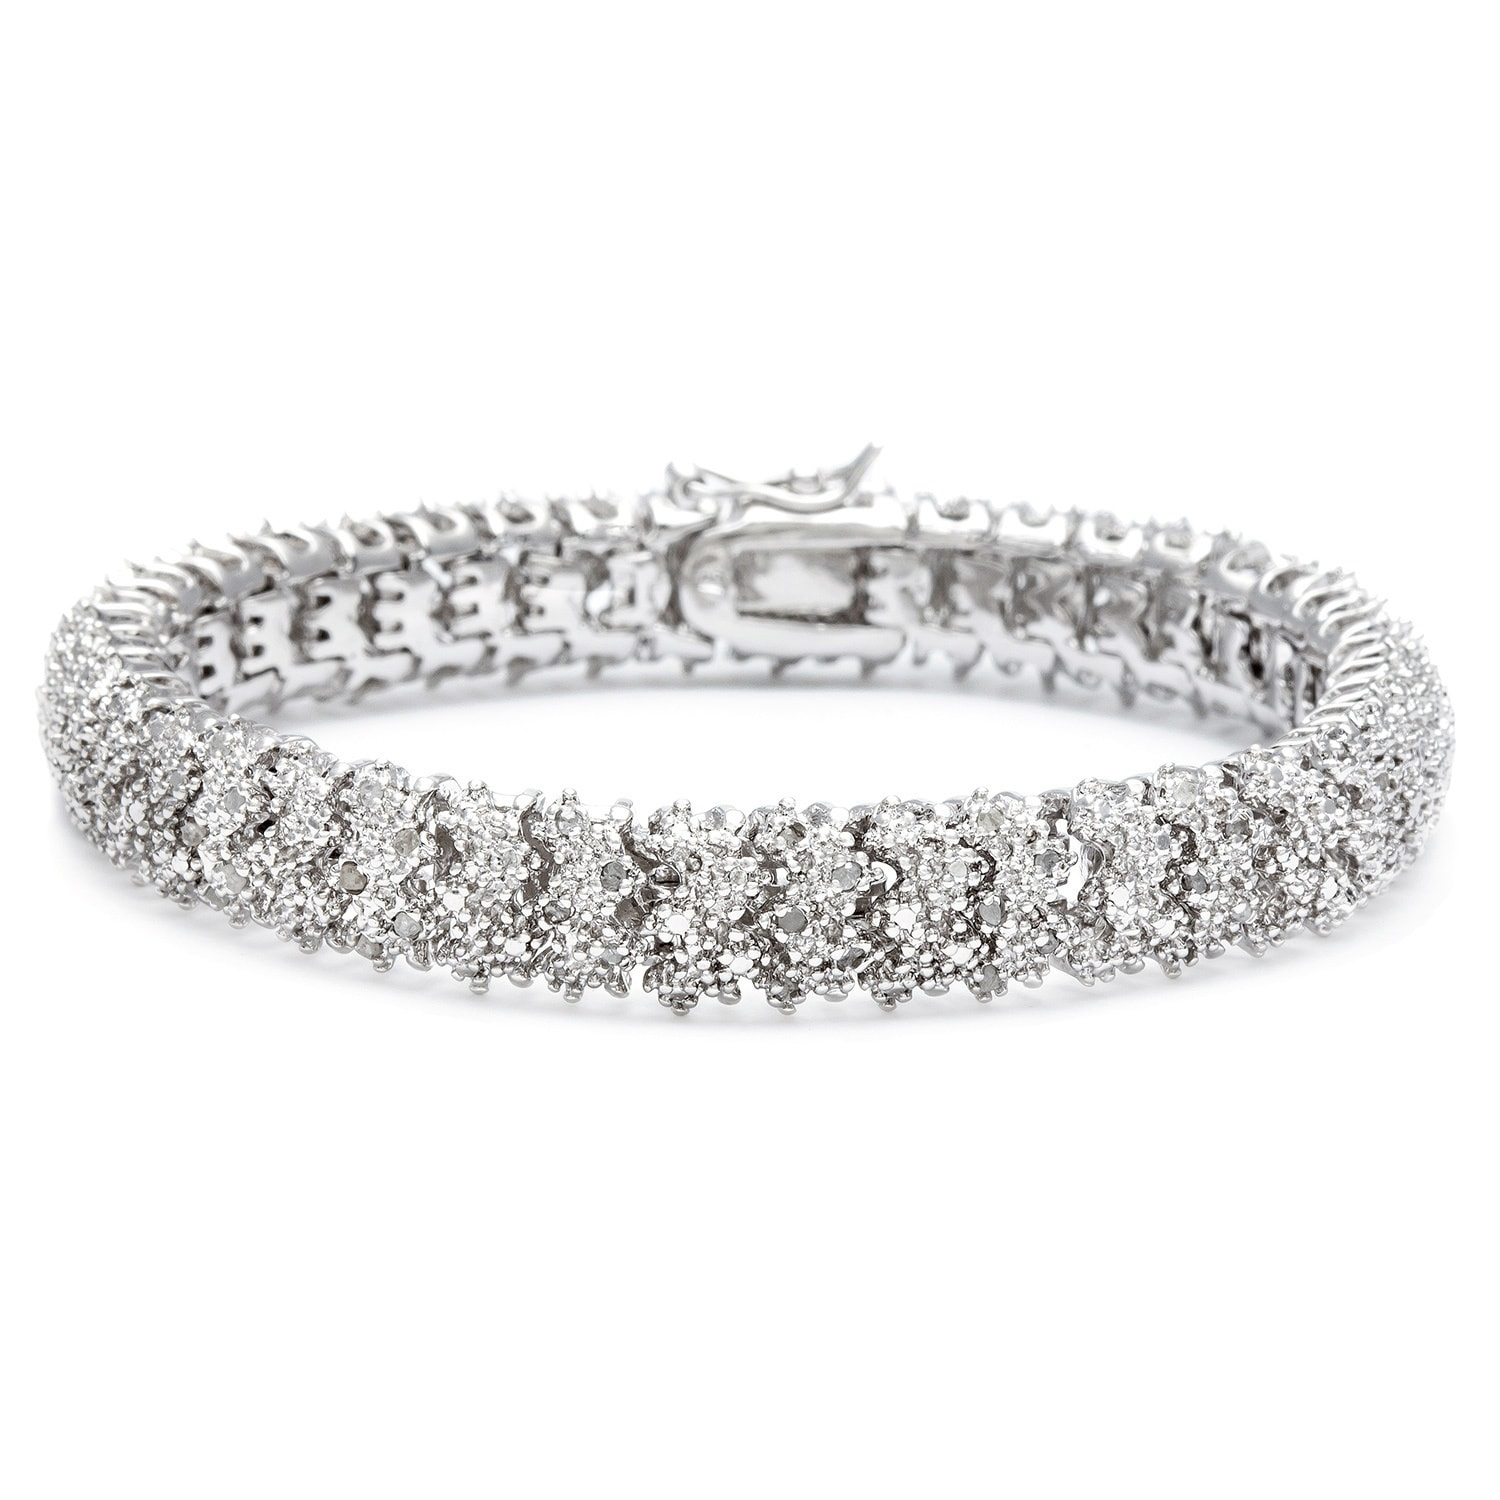 aibtlwtf diamond ic of jewellers tennis product unique ben gold pagespeed bracelet zfsfl moss qitok image white